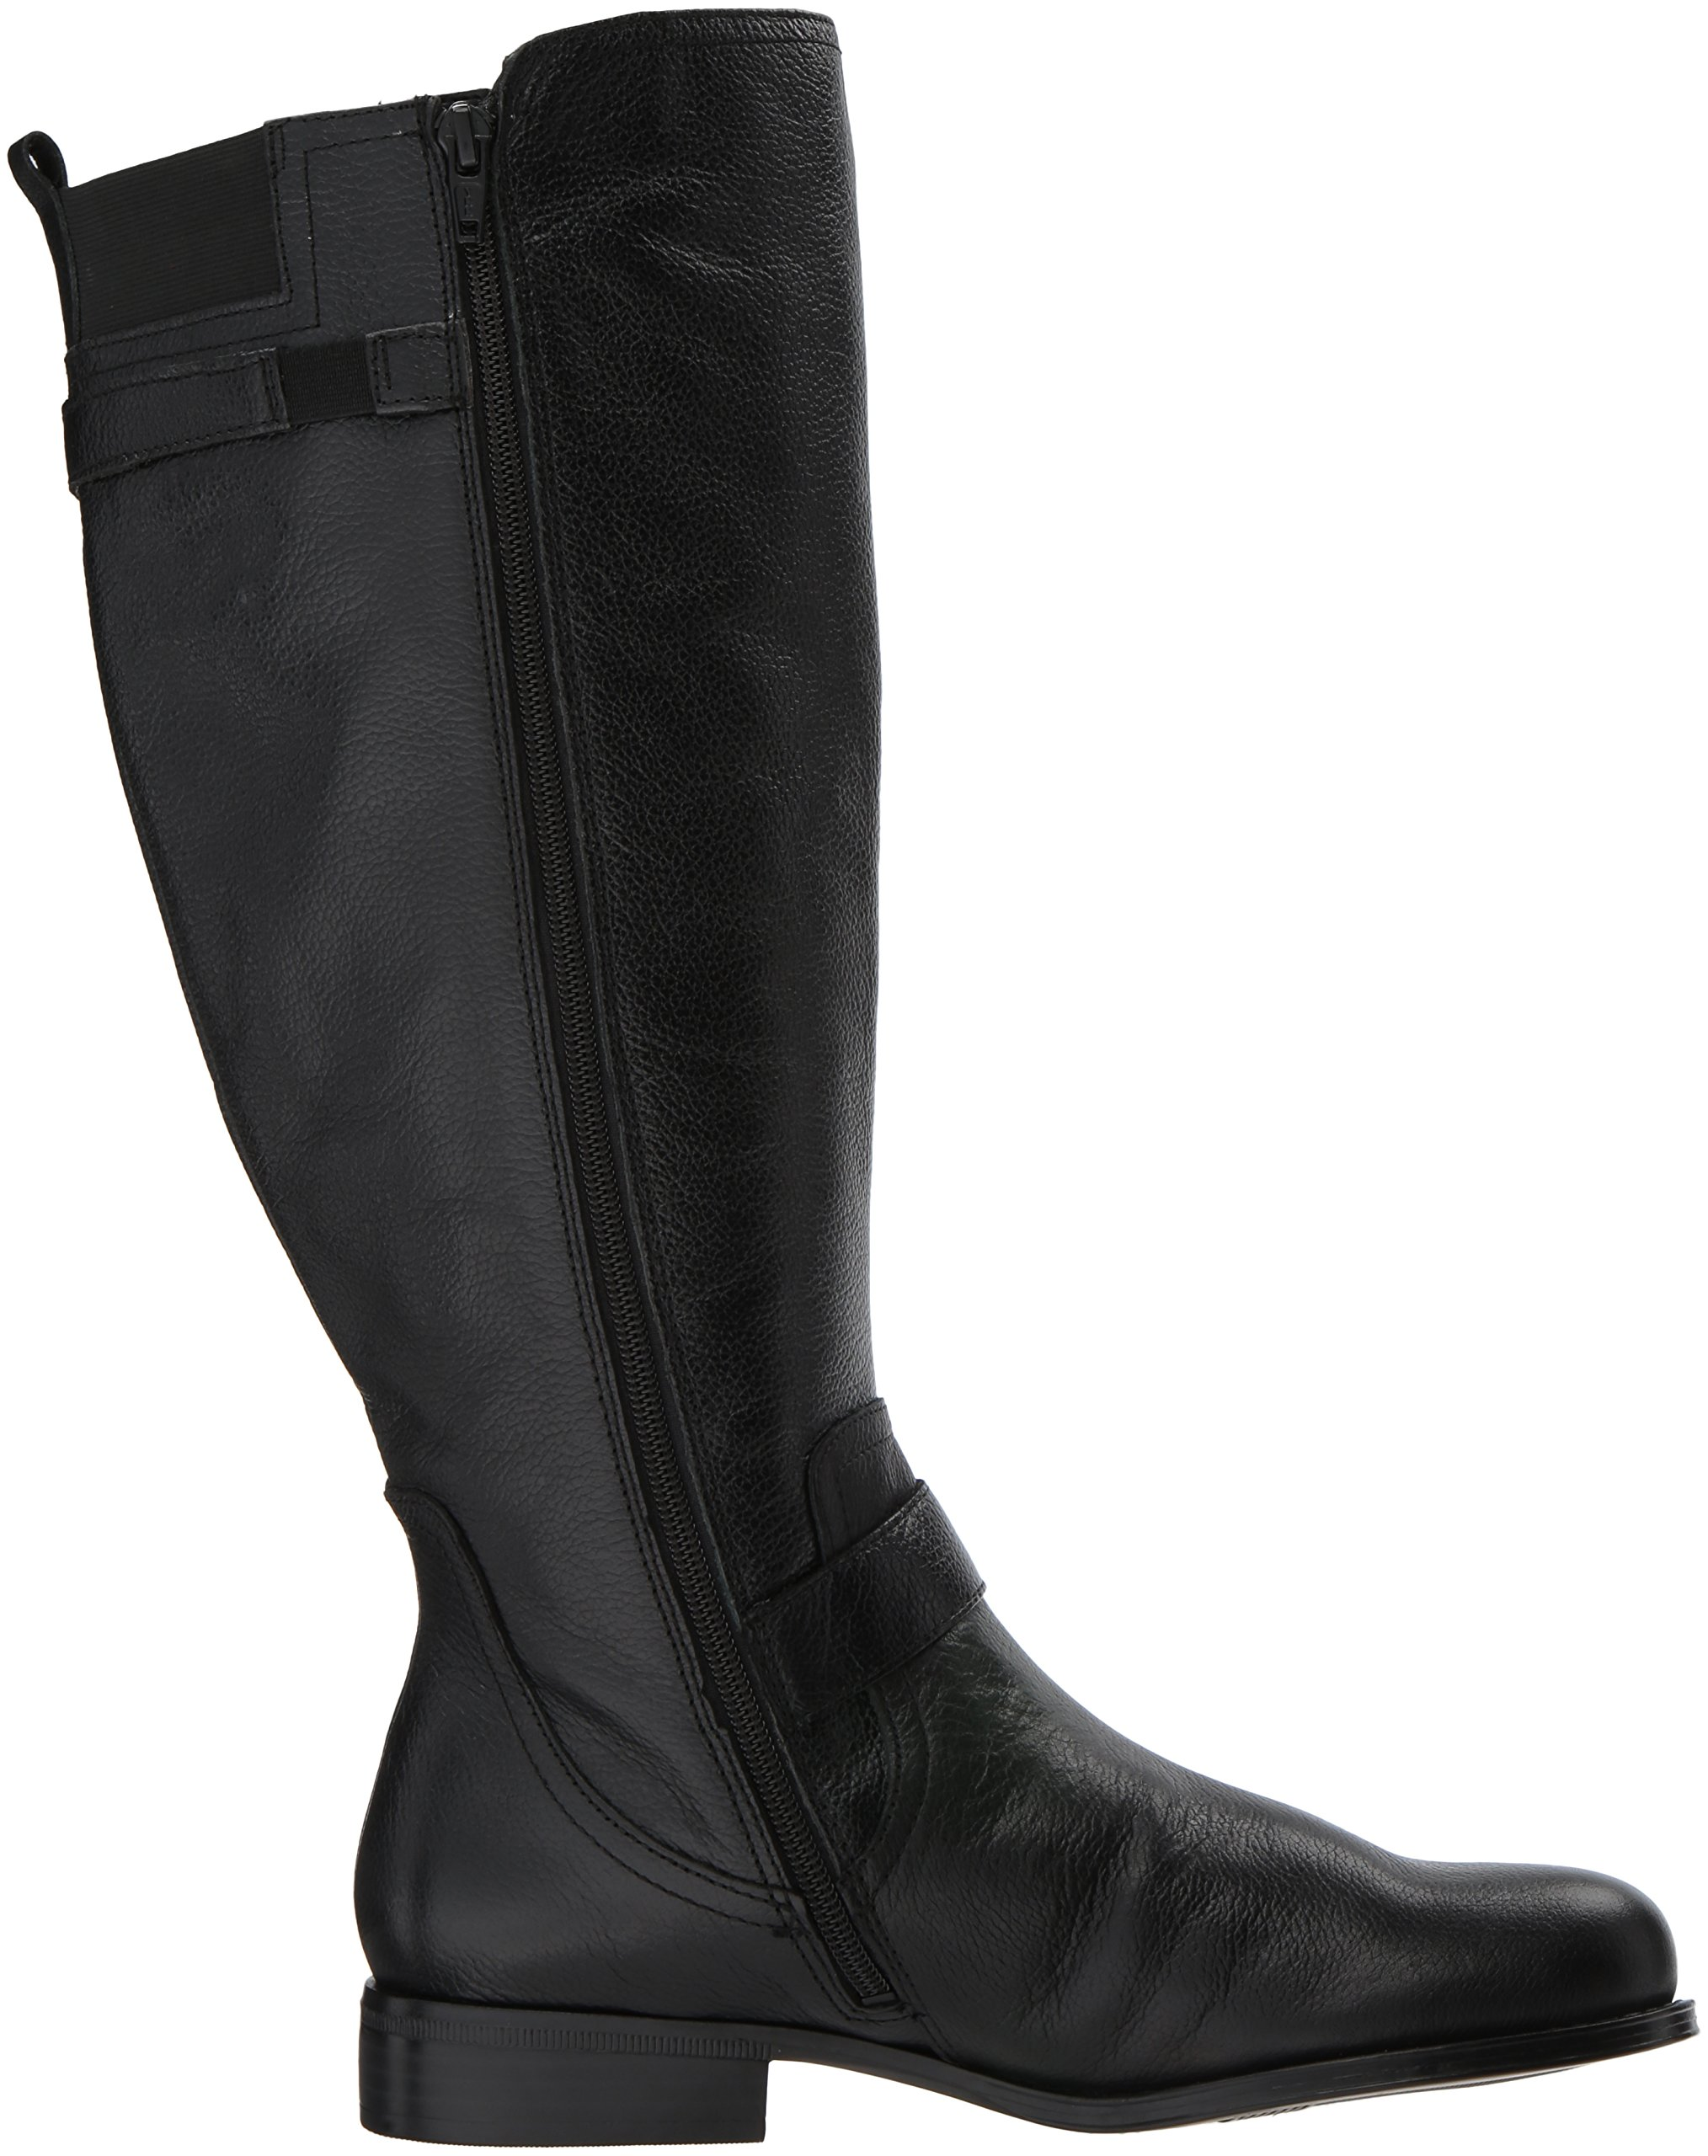 Naturalizer Women's Jenelle Wc Riding Boot, Black, 7.5 M US by Naturalizer (Image #7)